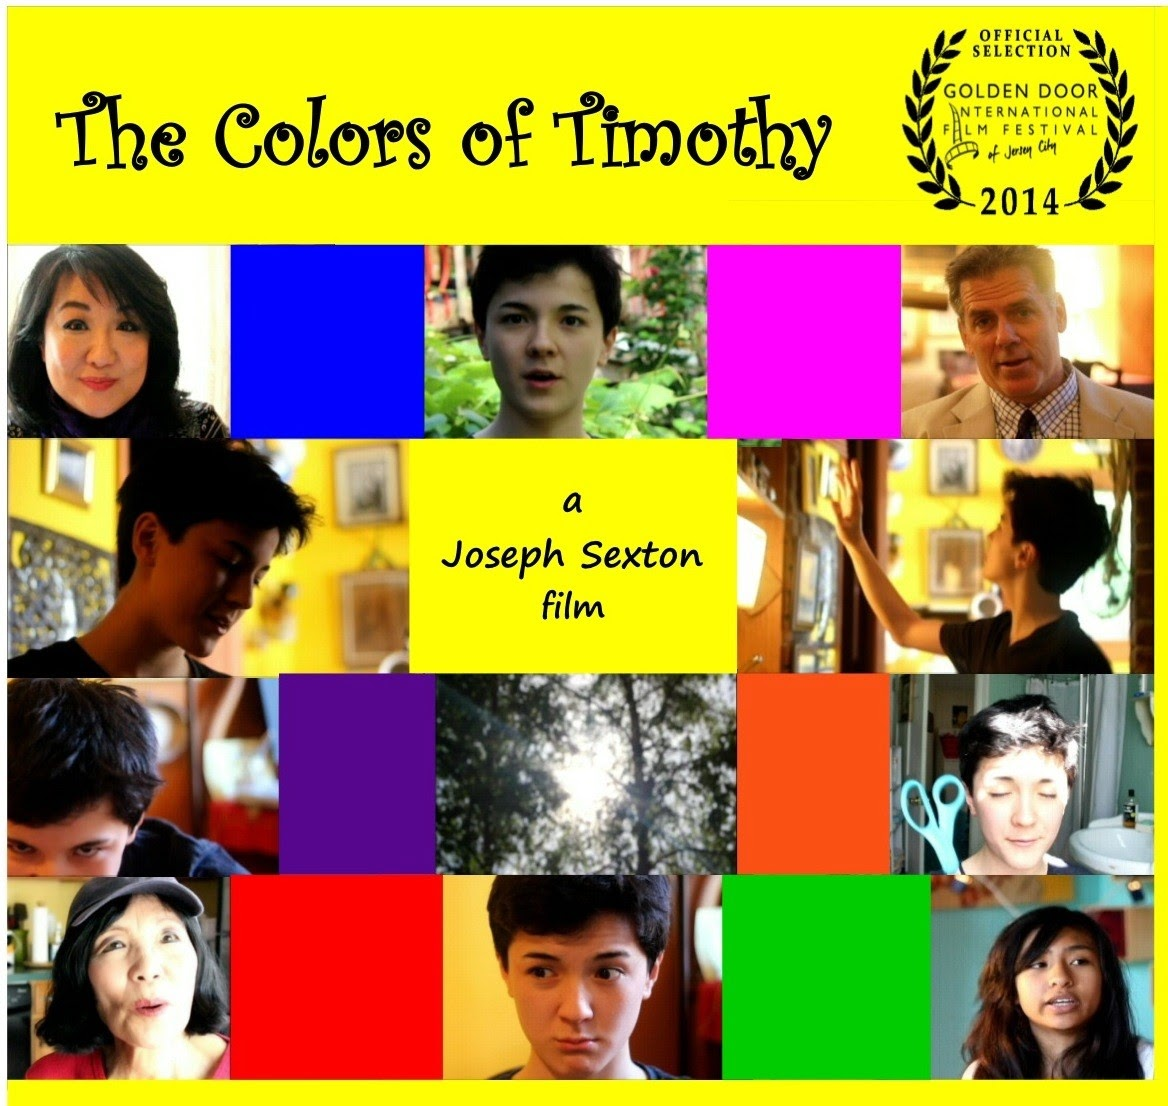 The Color of Timothy Image